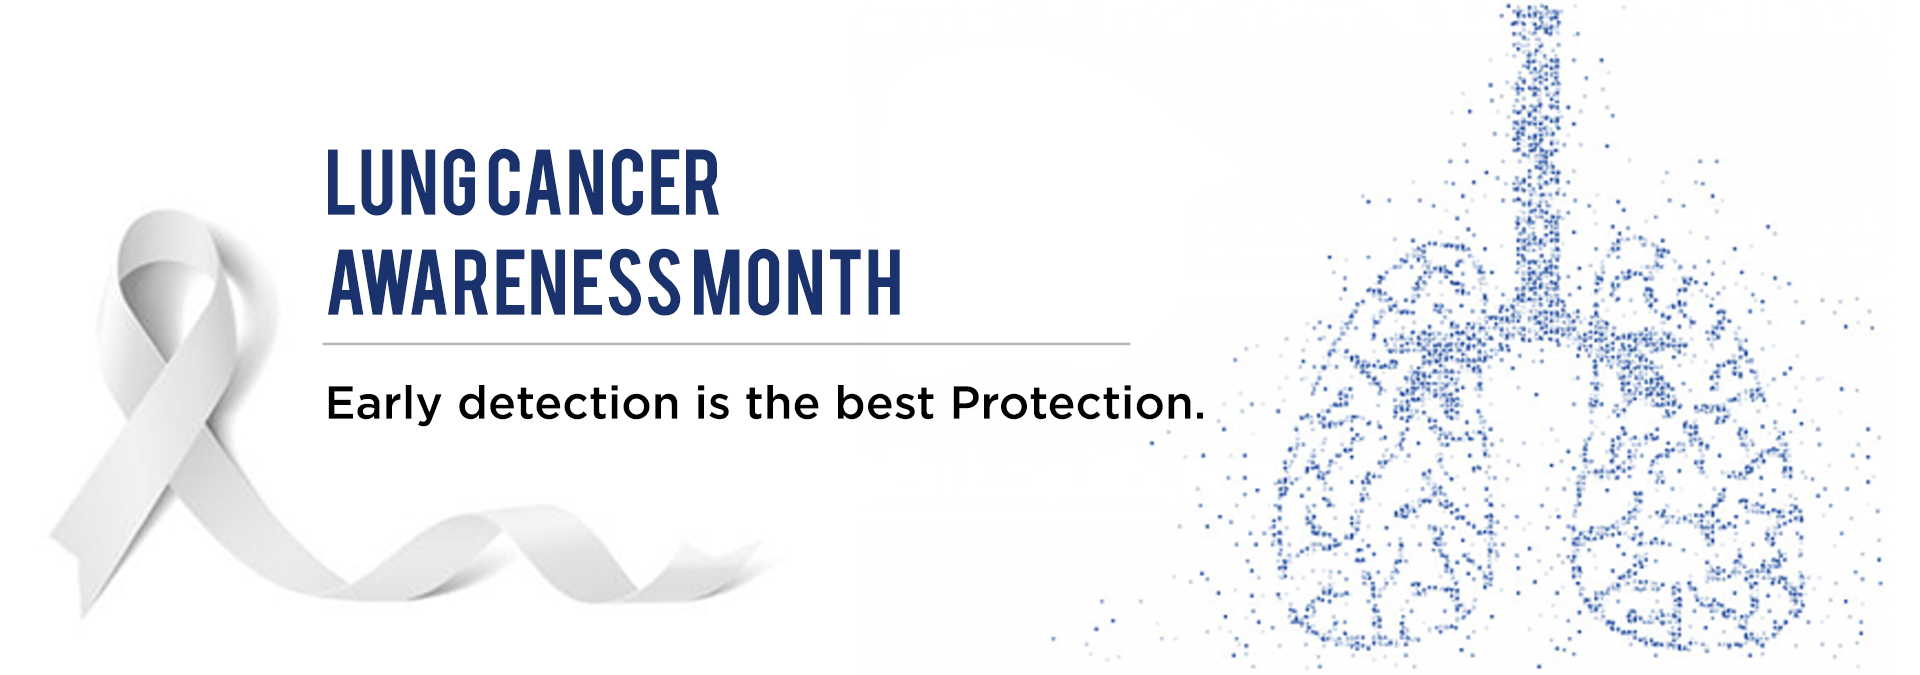 lung cancer awareness month by DSS Imagetech